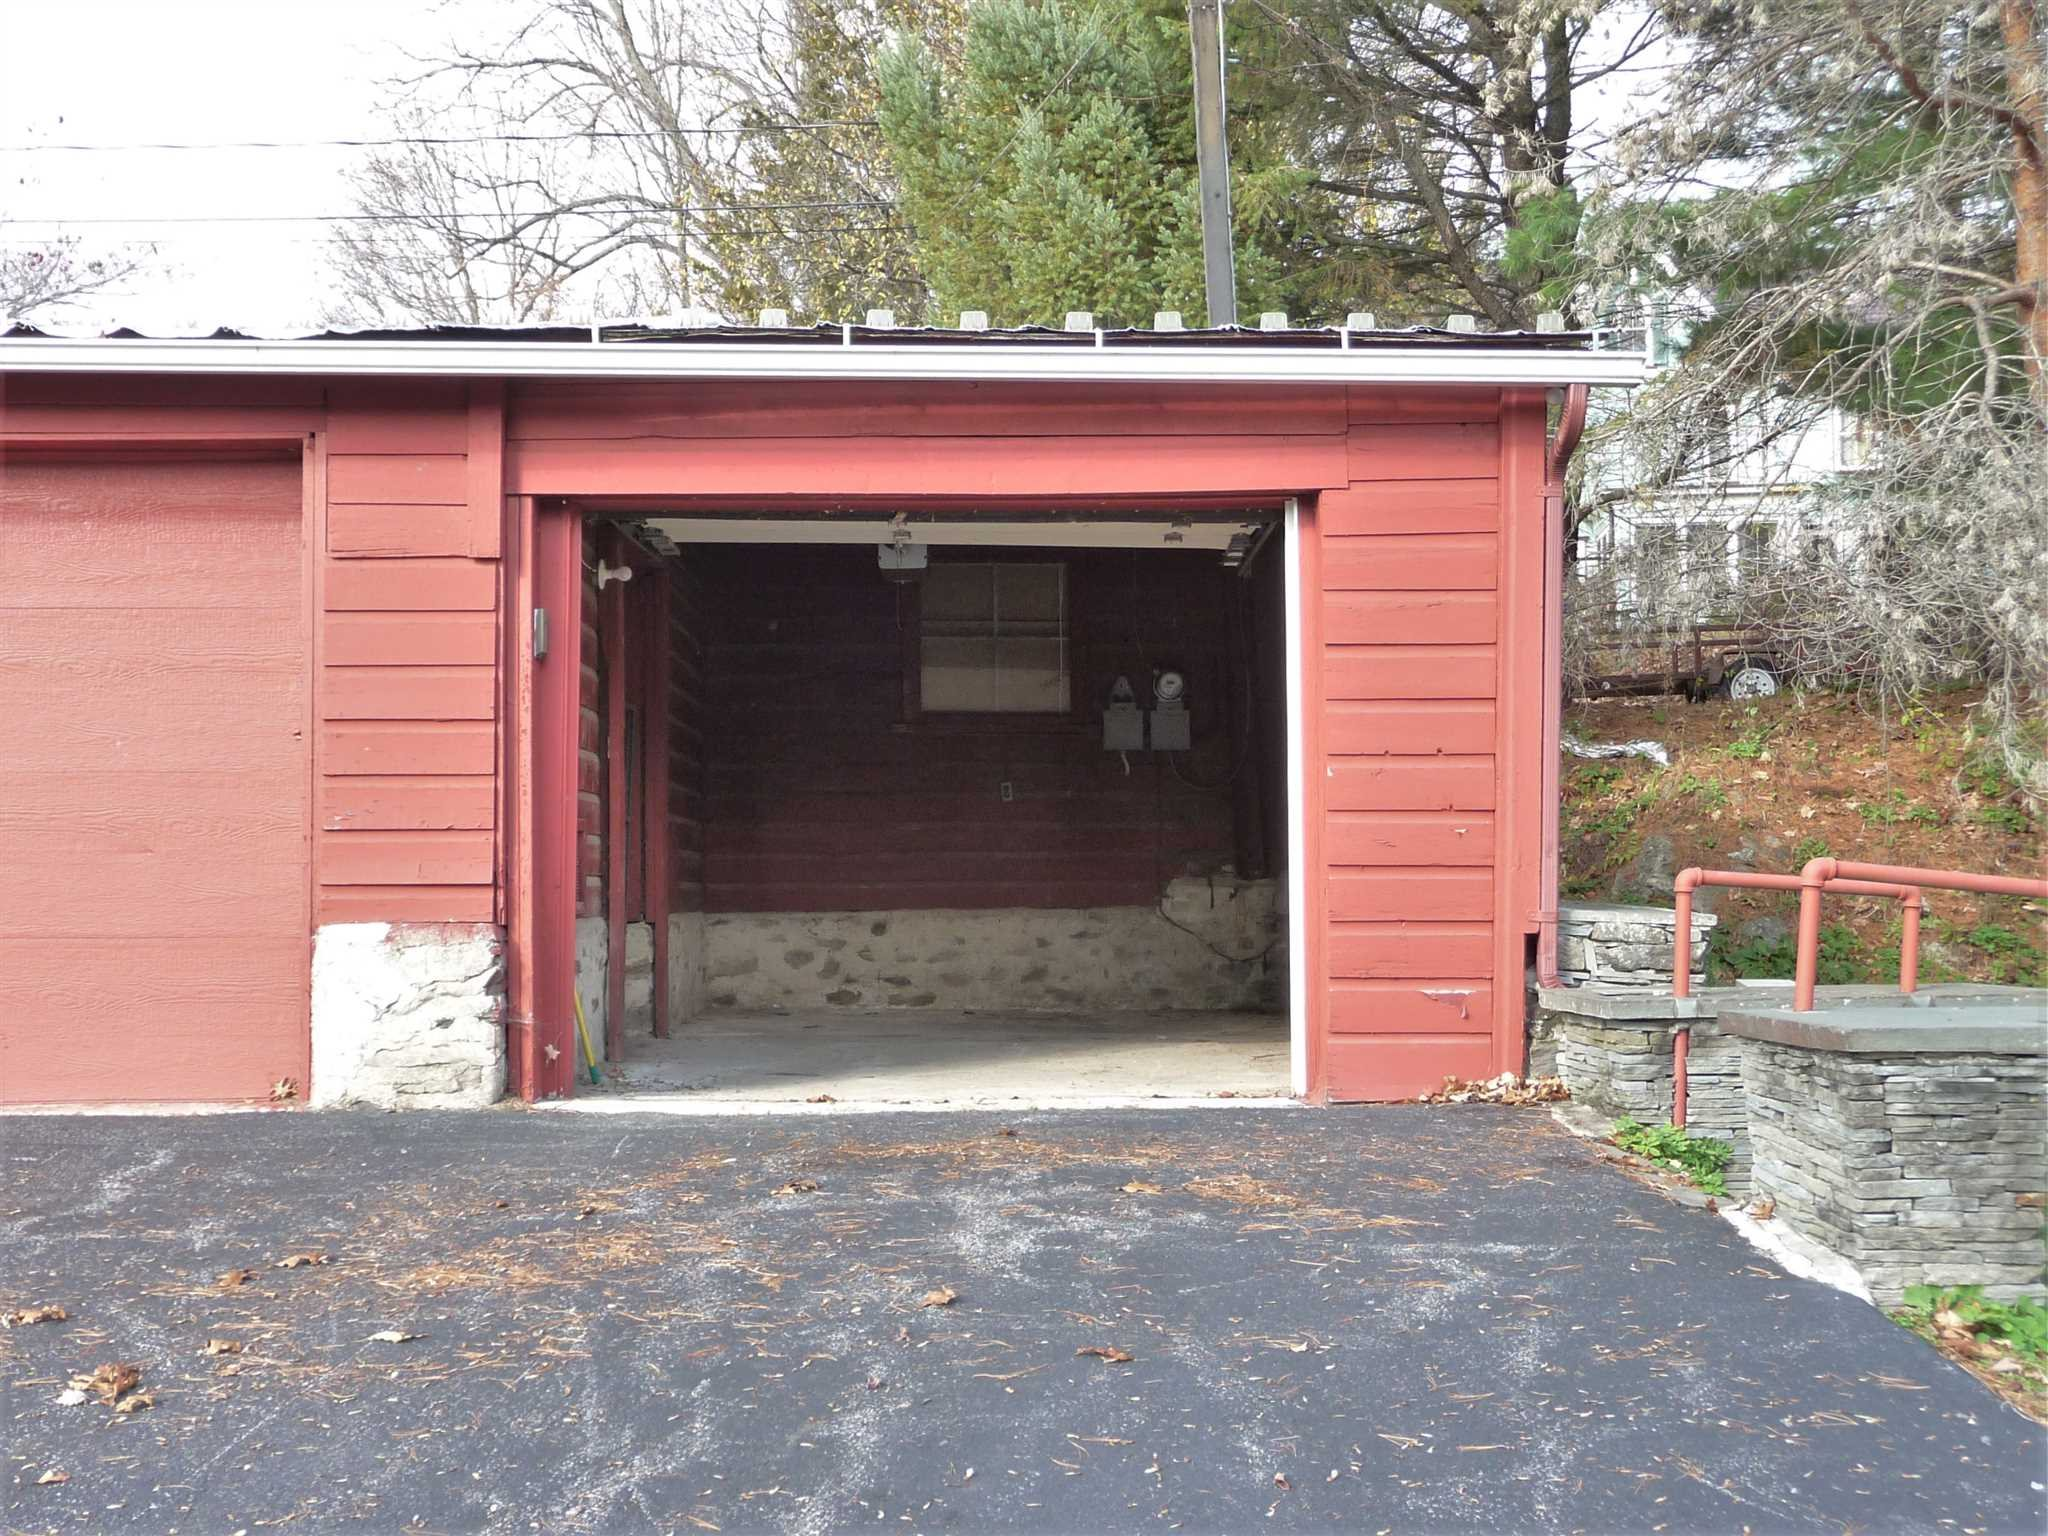 Commercial for Sale at BEDELL Road BEDELL Road Poughkeepsie, New York 12603 United States